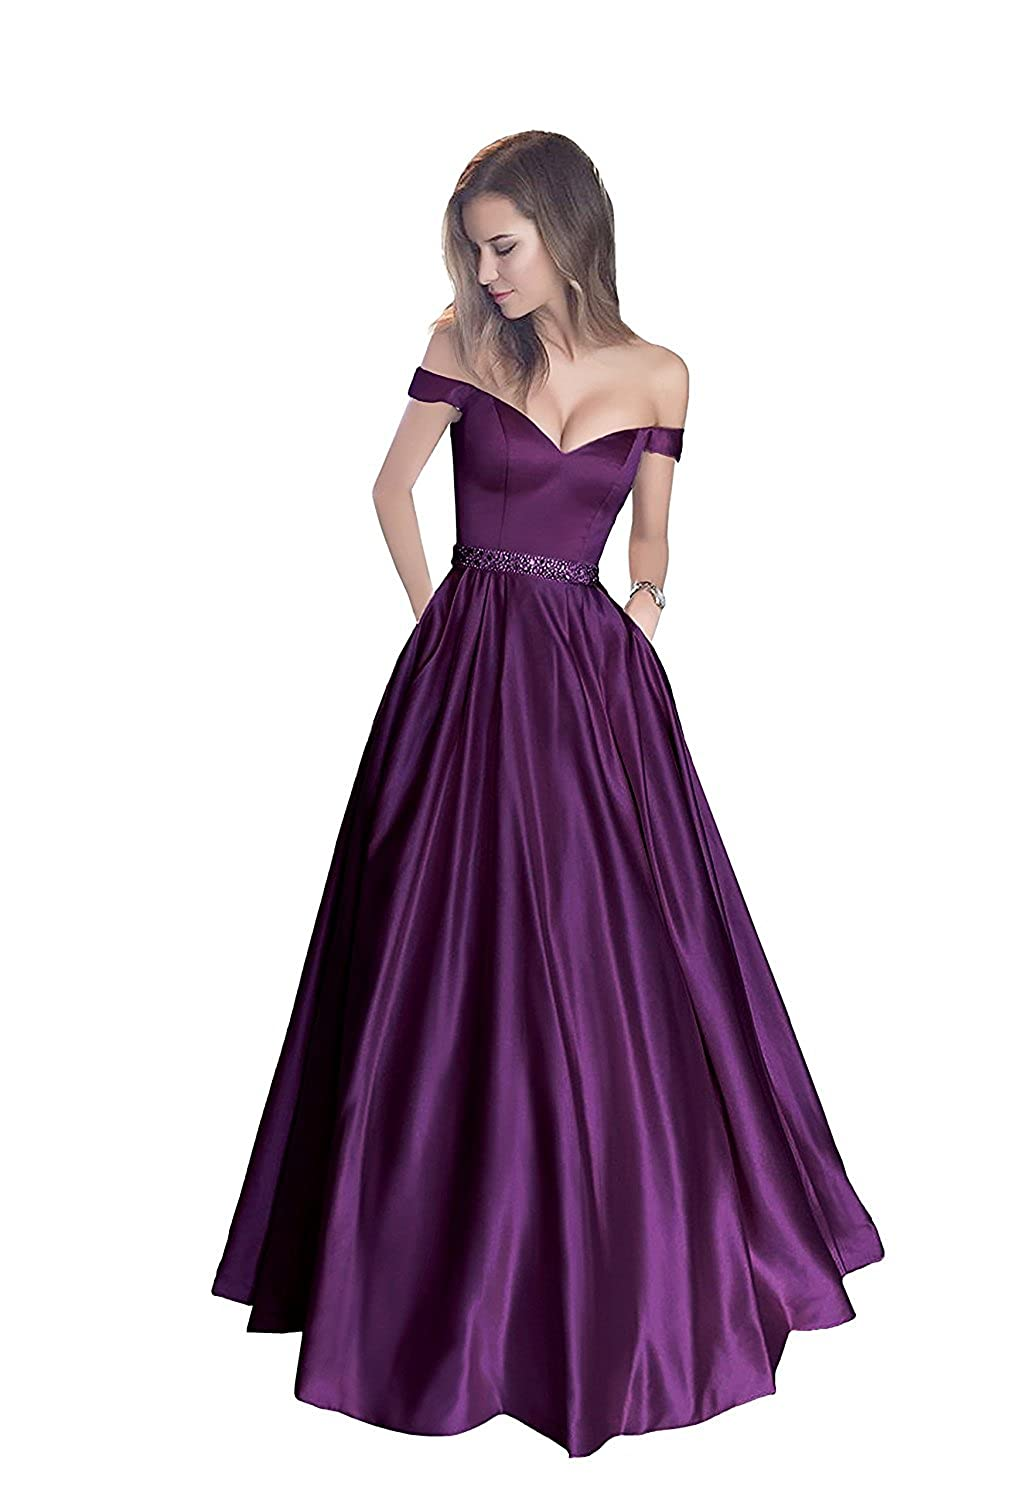 Purple1 LISA.MOON Women's V Neck Long Sleeves Back Hole Lace Applique Pearl Evening Gown